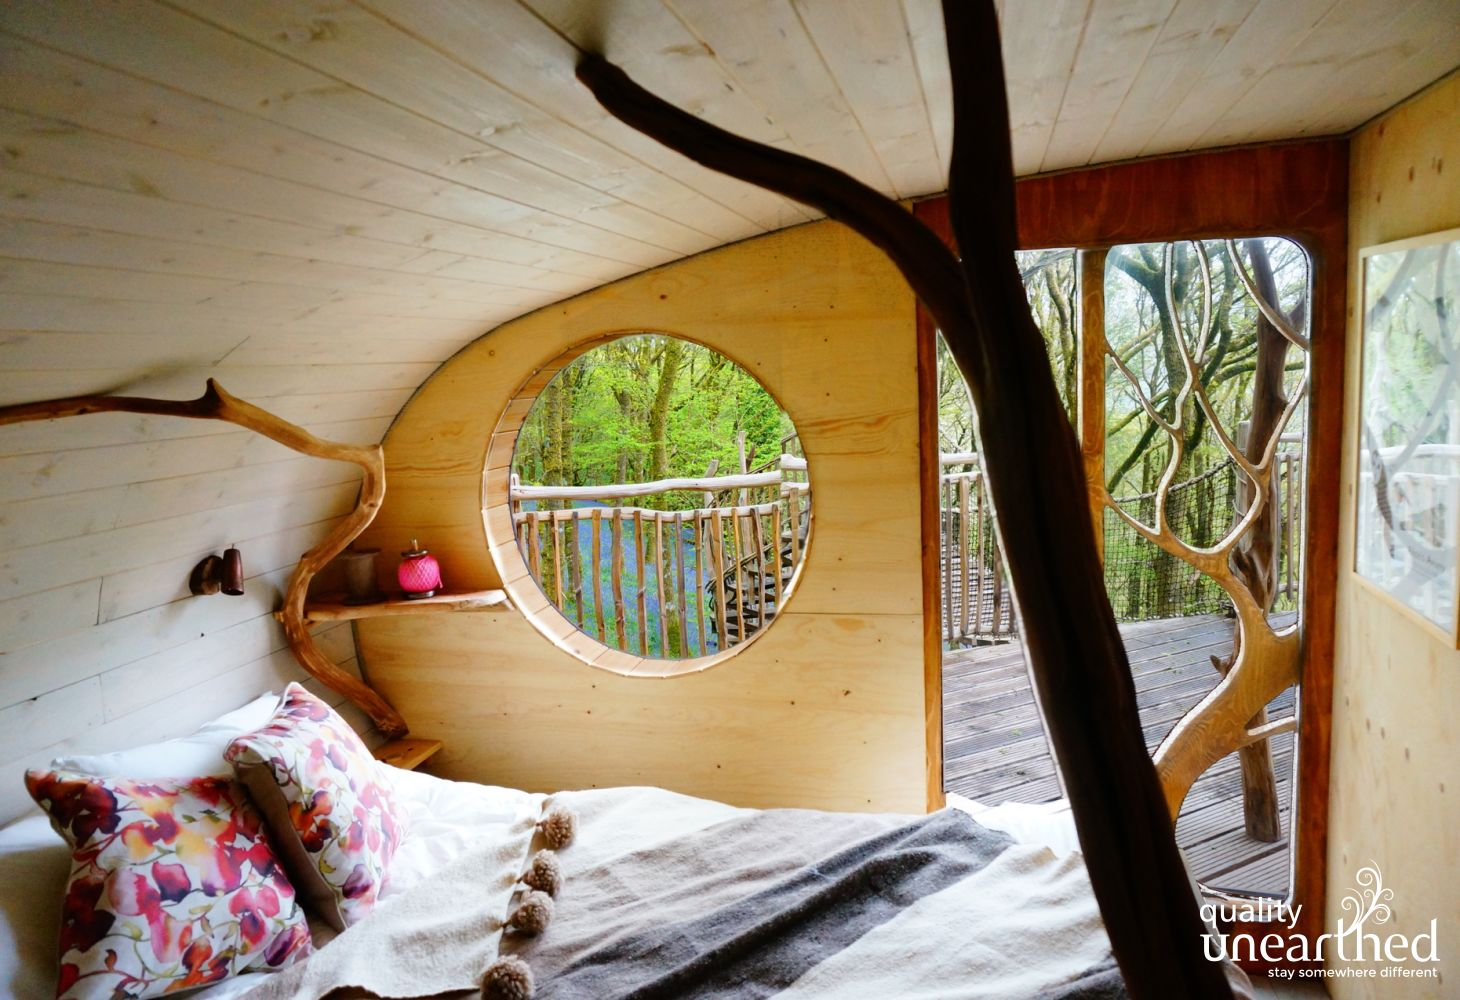 From the porthole window of this double bedroom you can see the treehouse terrace, the rope bridge and that the treehouse sits in a bluebell wood